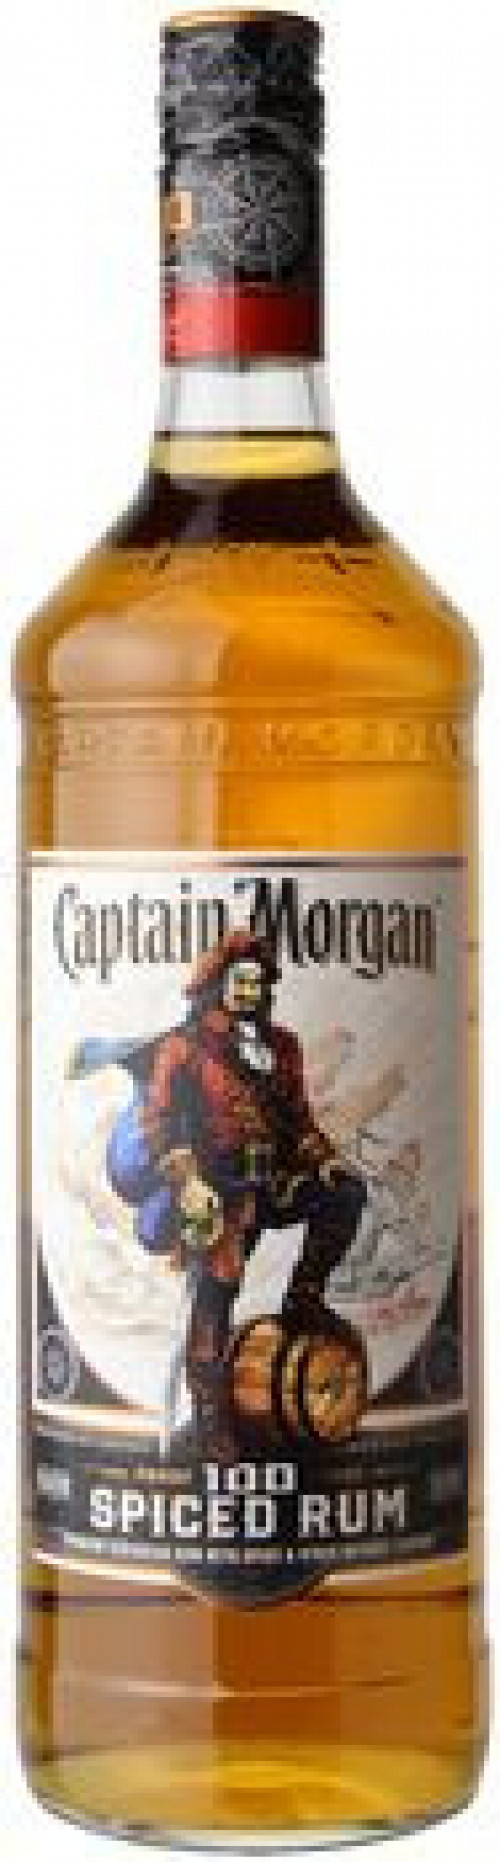 Captain Morgan Spiced Rum 100 Proof 750ml